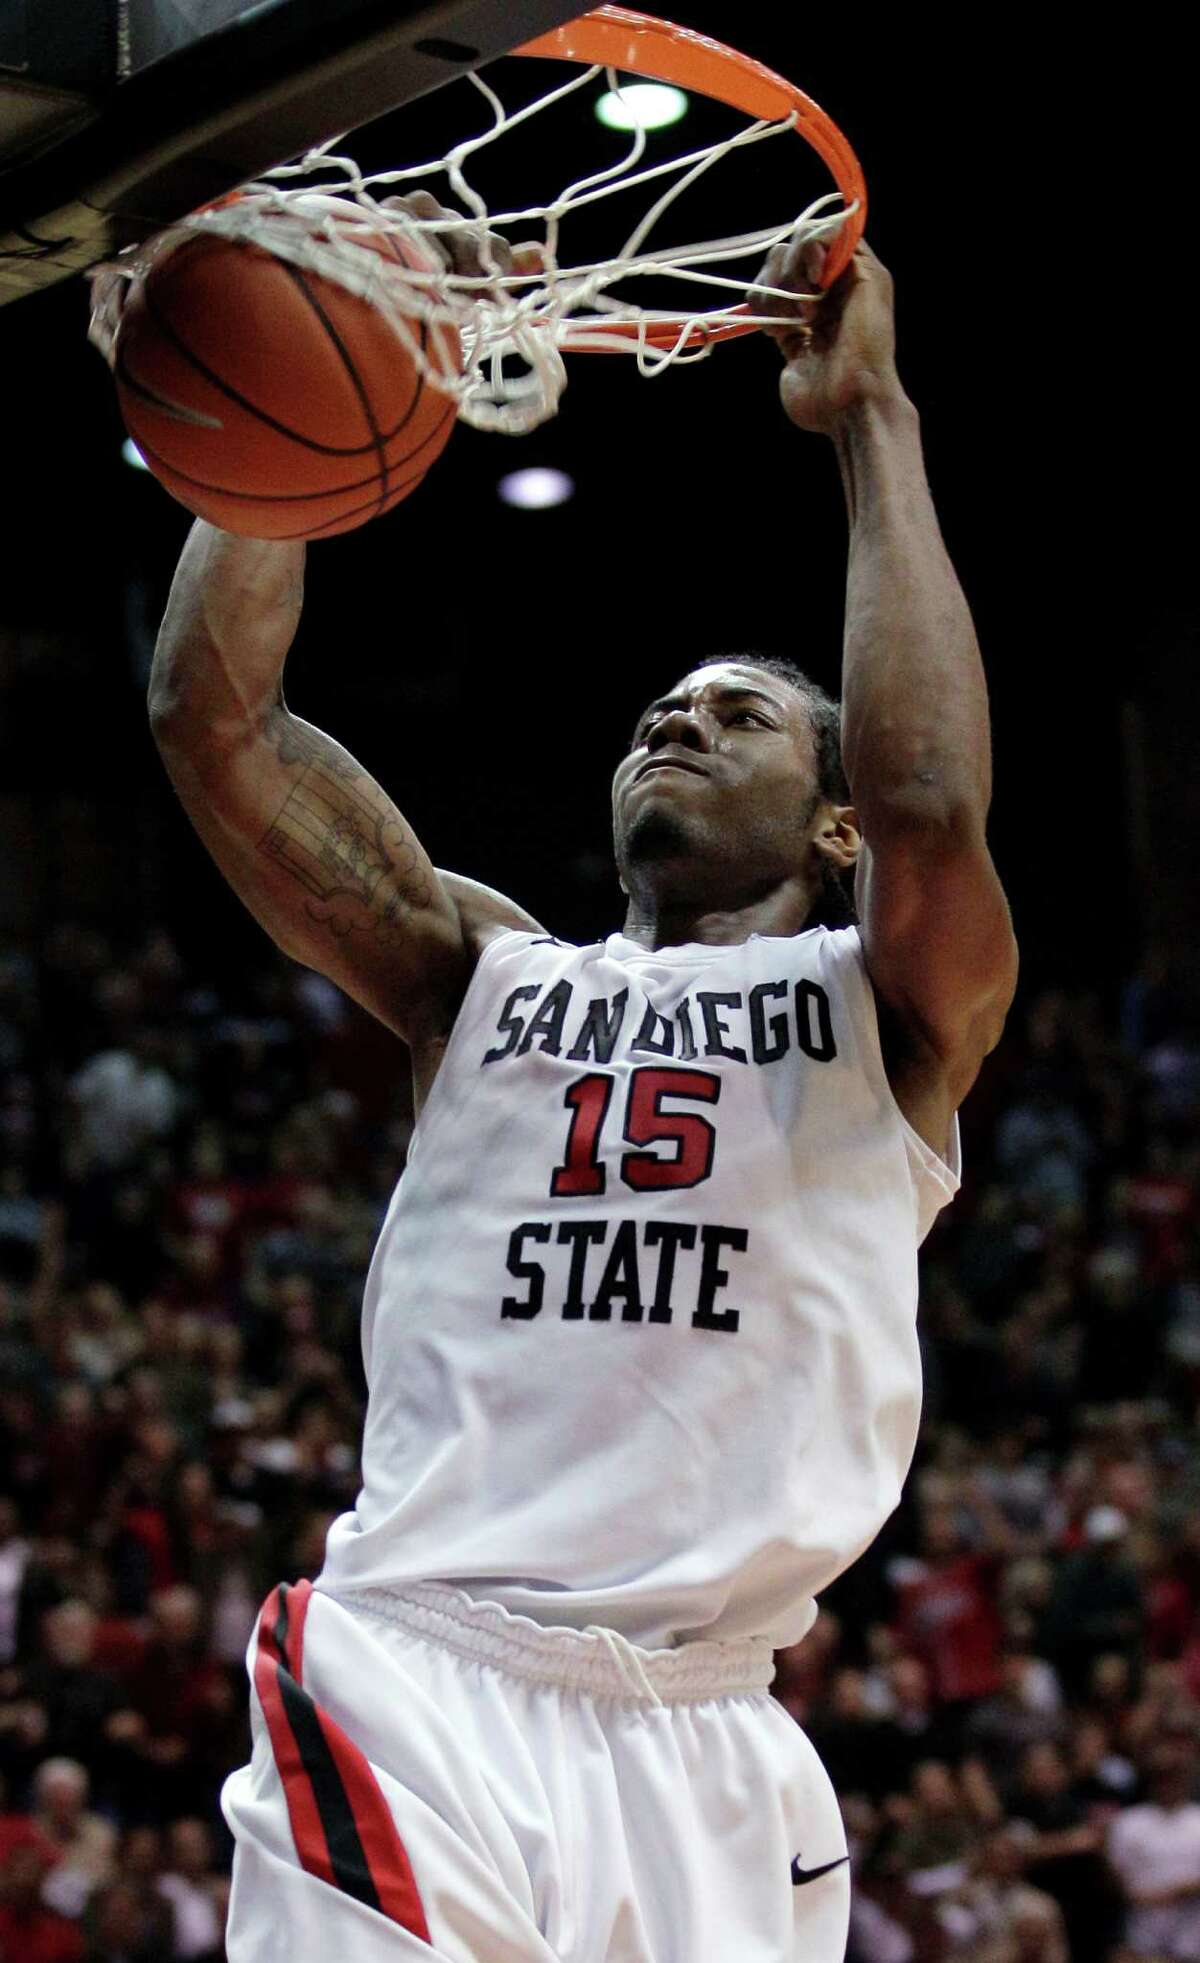 San Diego State's Kawhi Leonard dunks against New Mexico during the first half in 201l.